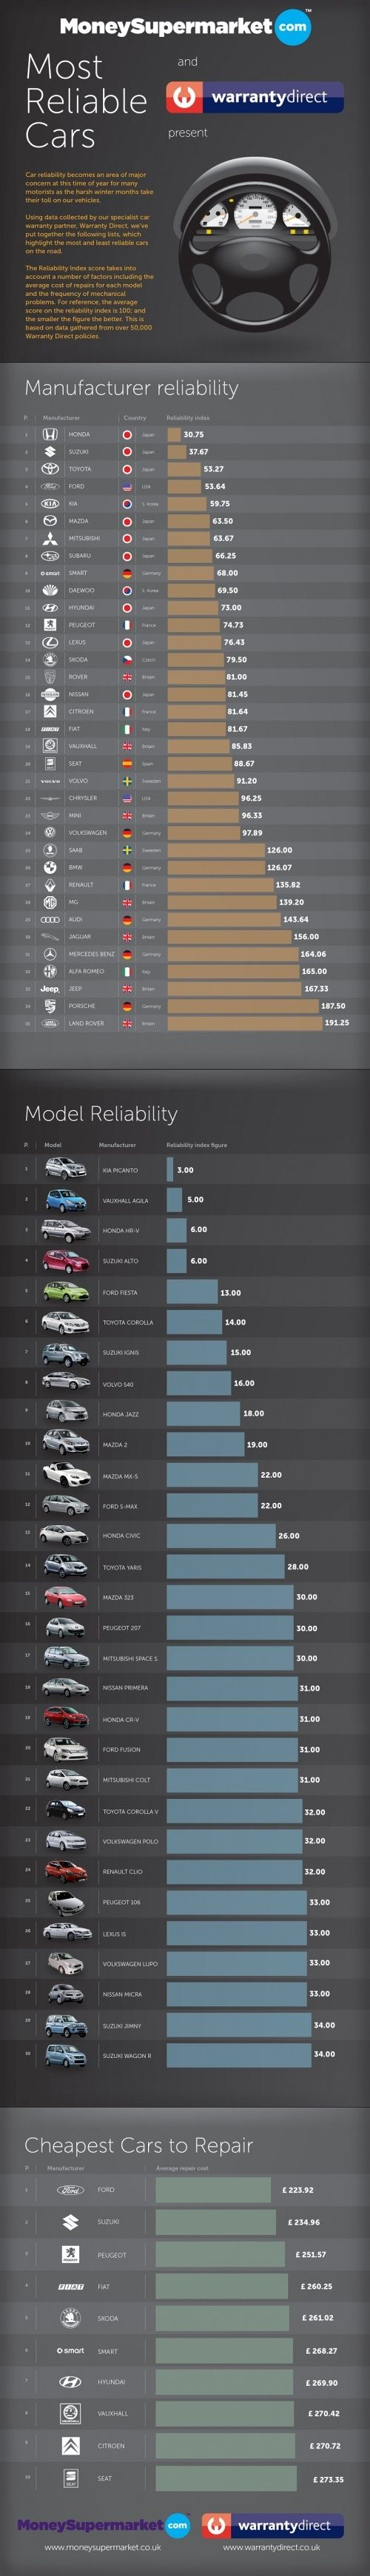 Keeping your car for a while? Look at this list of most reliable cars! #reliable #car #tips #buying #honda #toyota #mitsubishi #subaru #audi #lexus #hyundai #bmw #mercedes #jeep #dodge #nissan #subaru